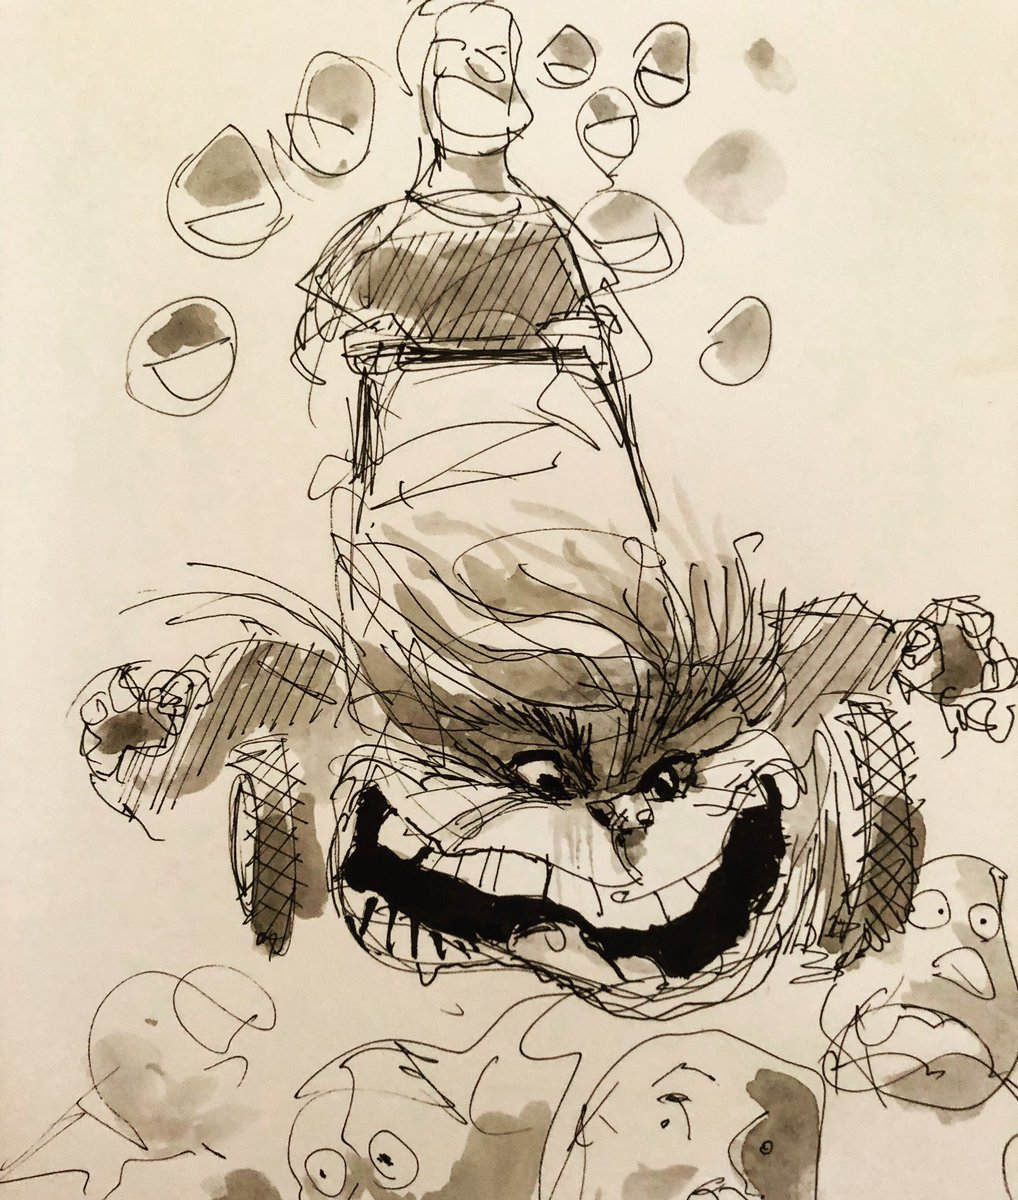 Ink and water sketch I did for on online SVA class I'm taking. #Trump #lawnmower #editorialcartoon #ink #watercolor